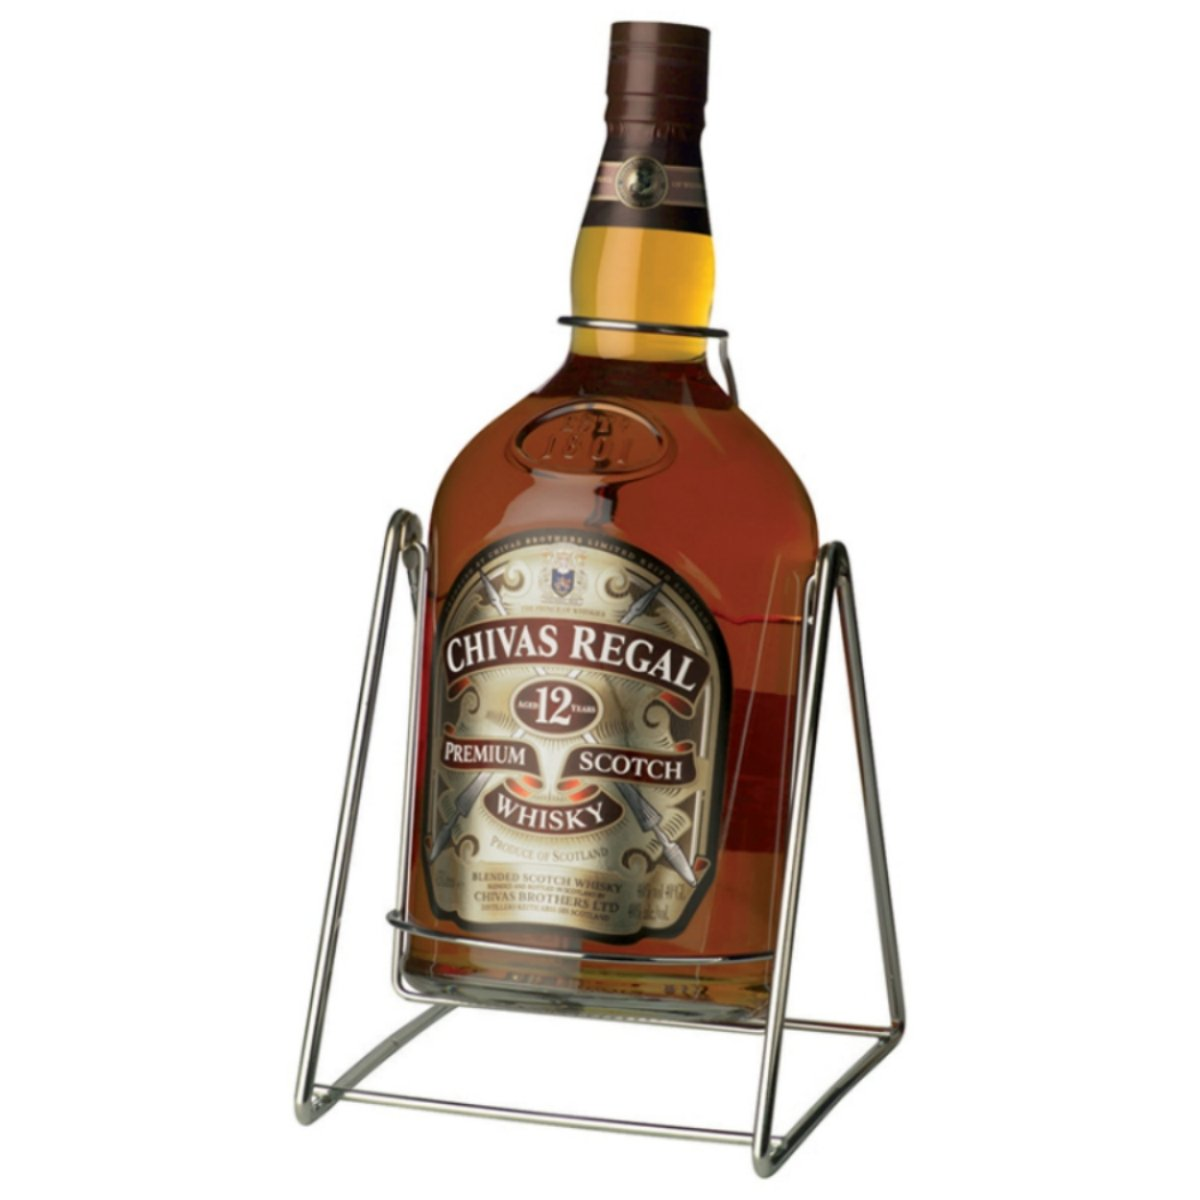 chivas regal Chivas regal 18 year old whisky for sale in our online whiskey shop in south africa buy chivas regal 18 year old whisky online today.